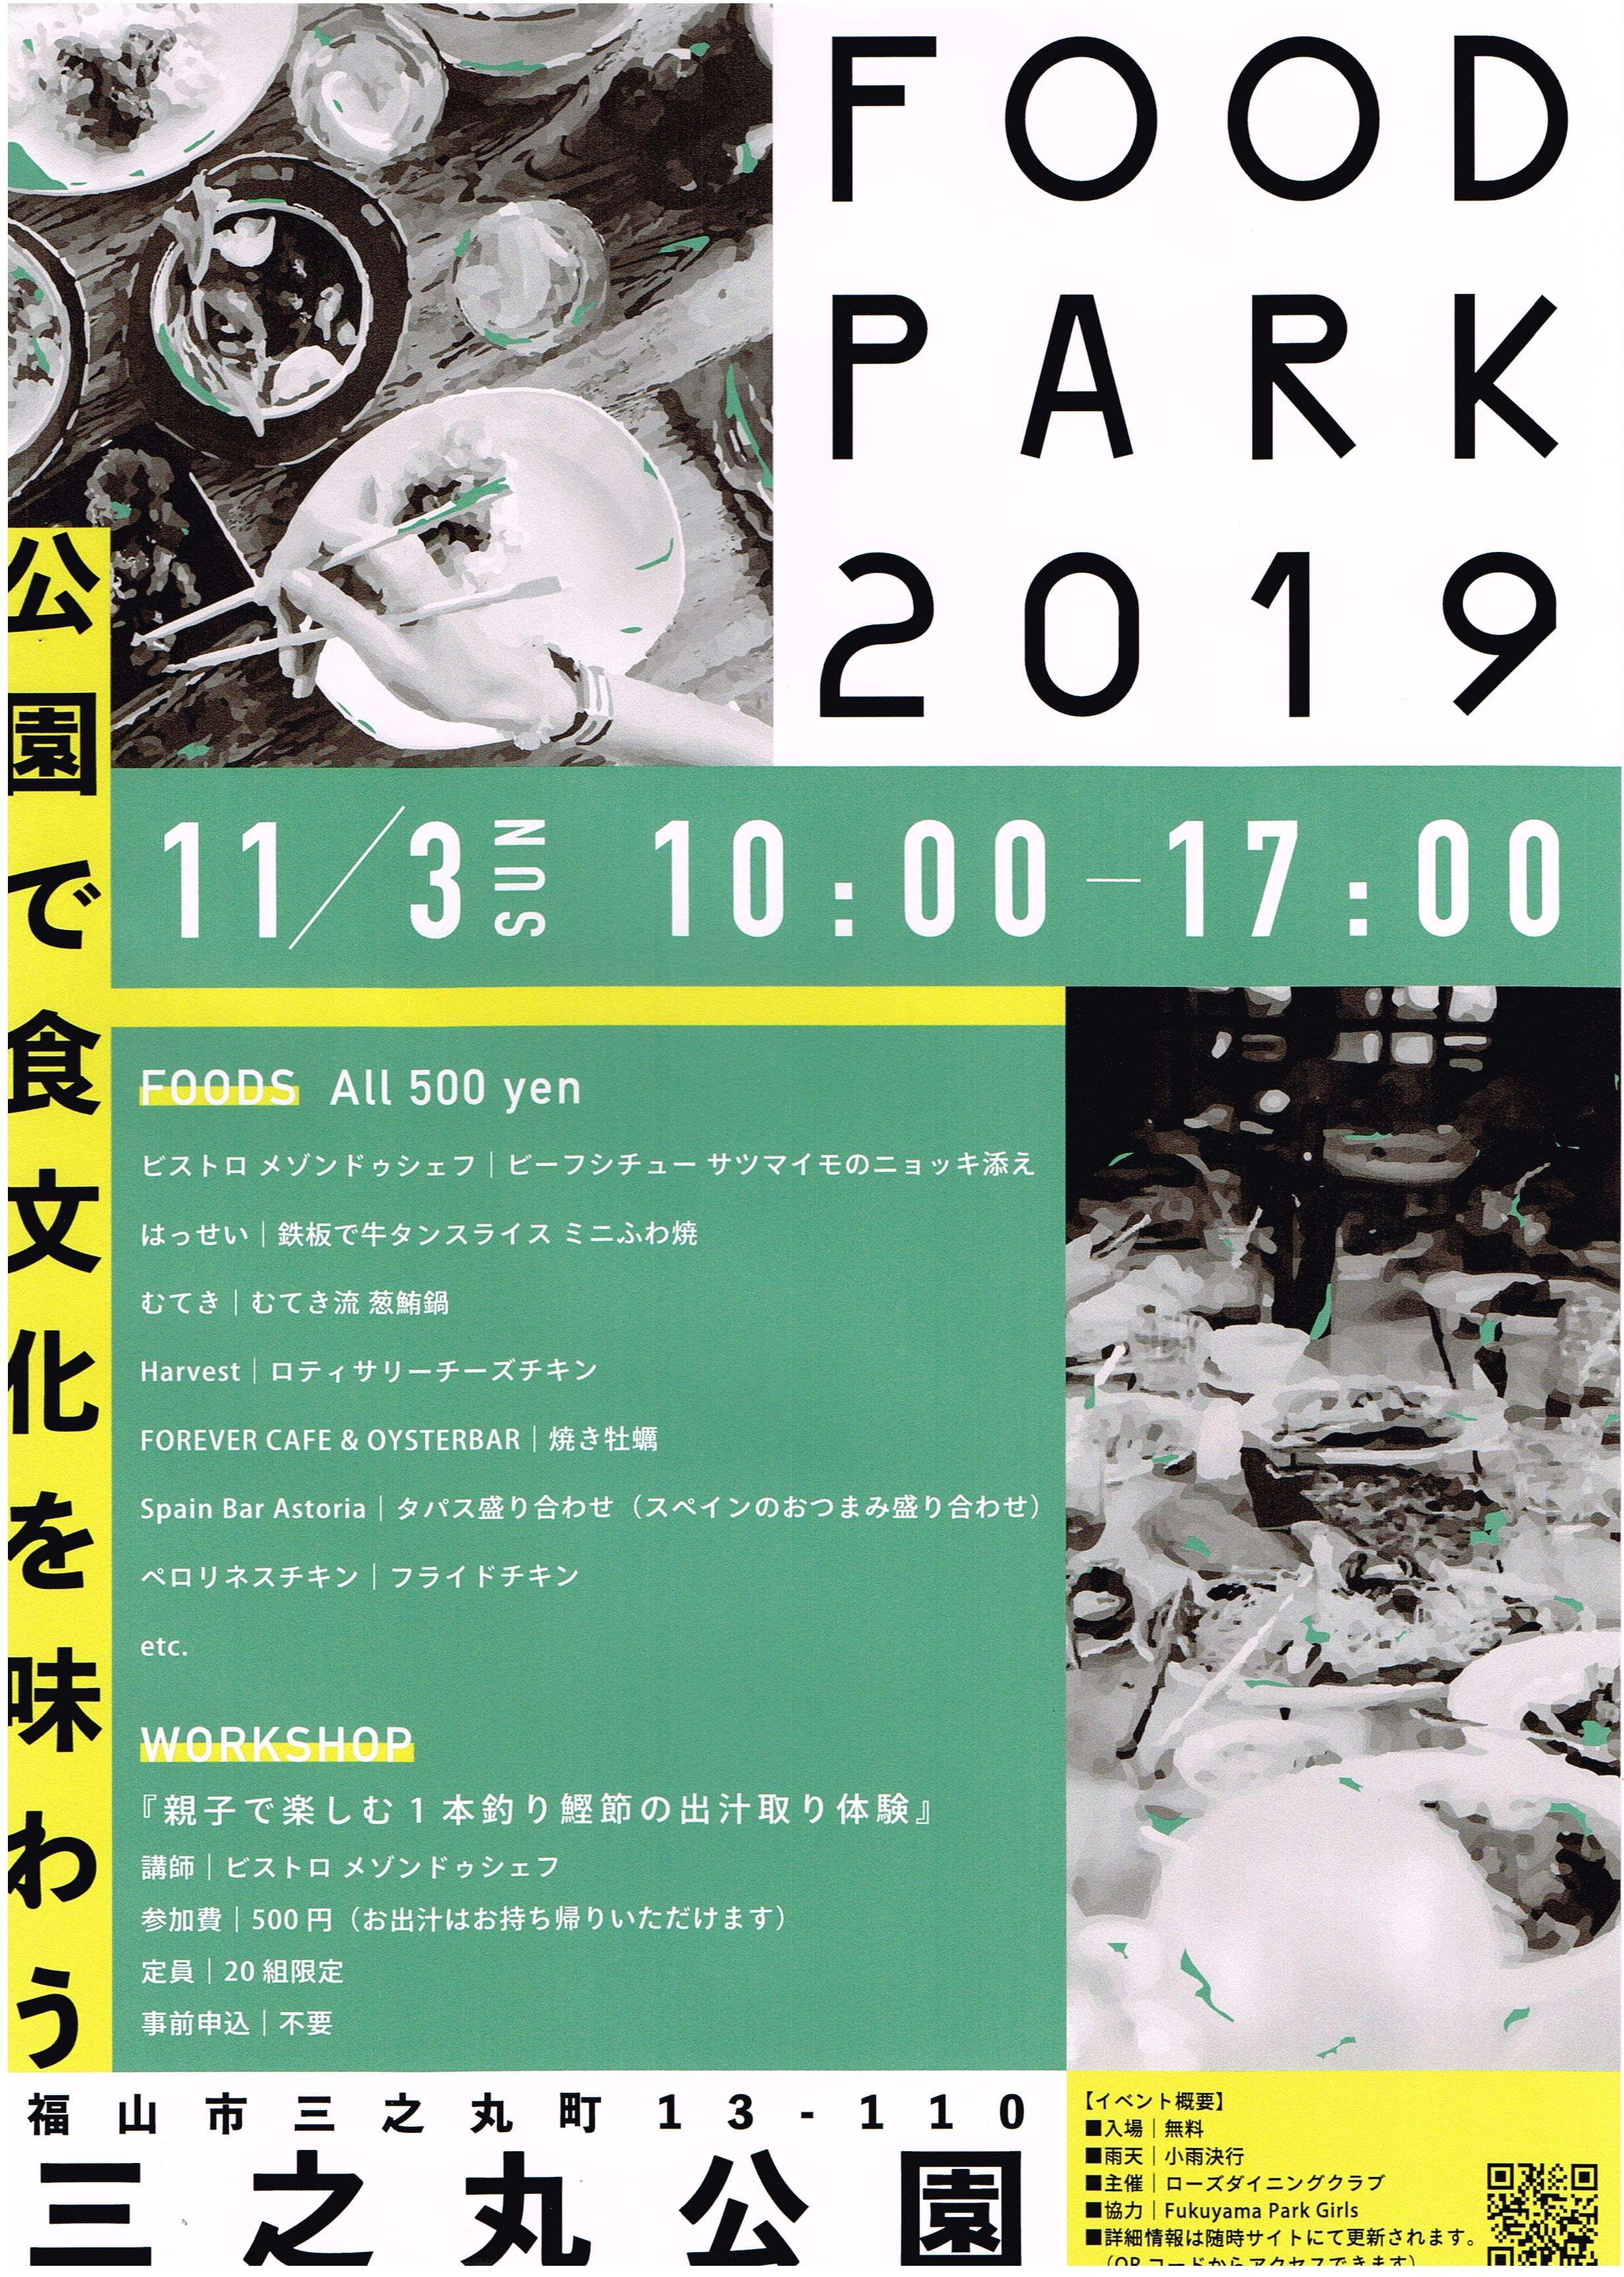 FoodPark2019 公園で食文化を味わう